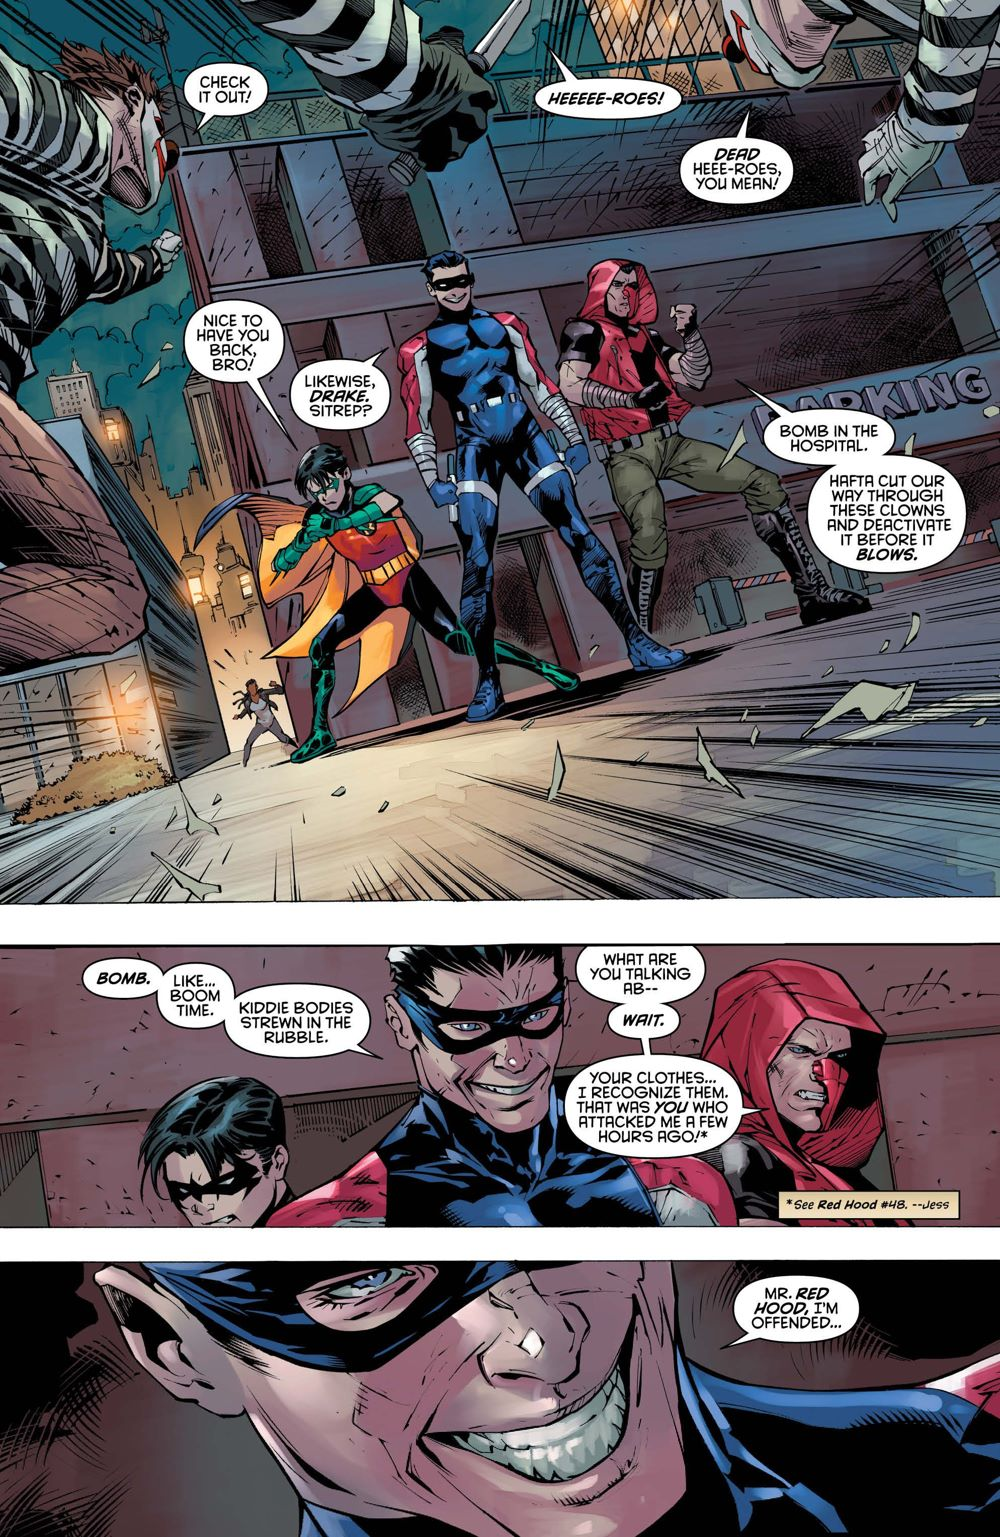 NW-74-2 ComicList Previews: NIGHTWING #74